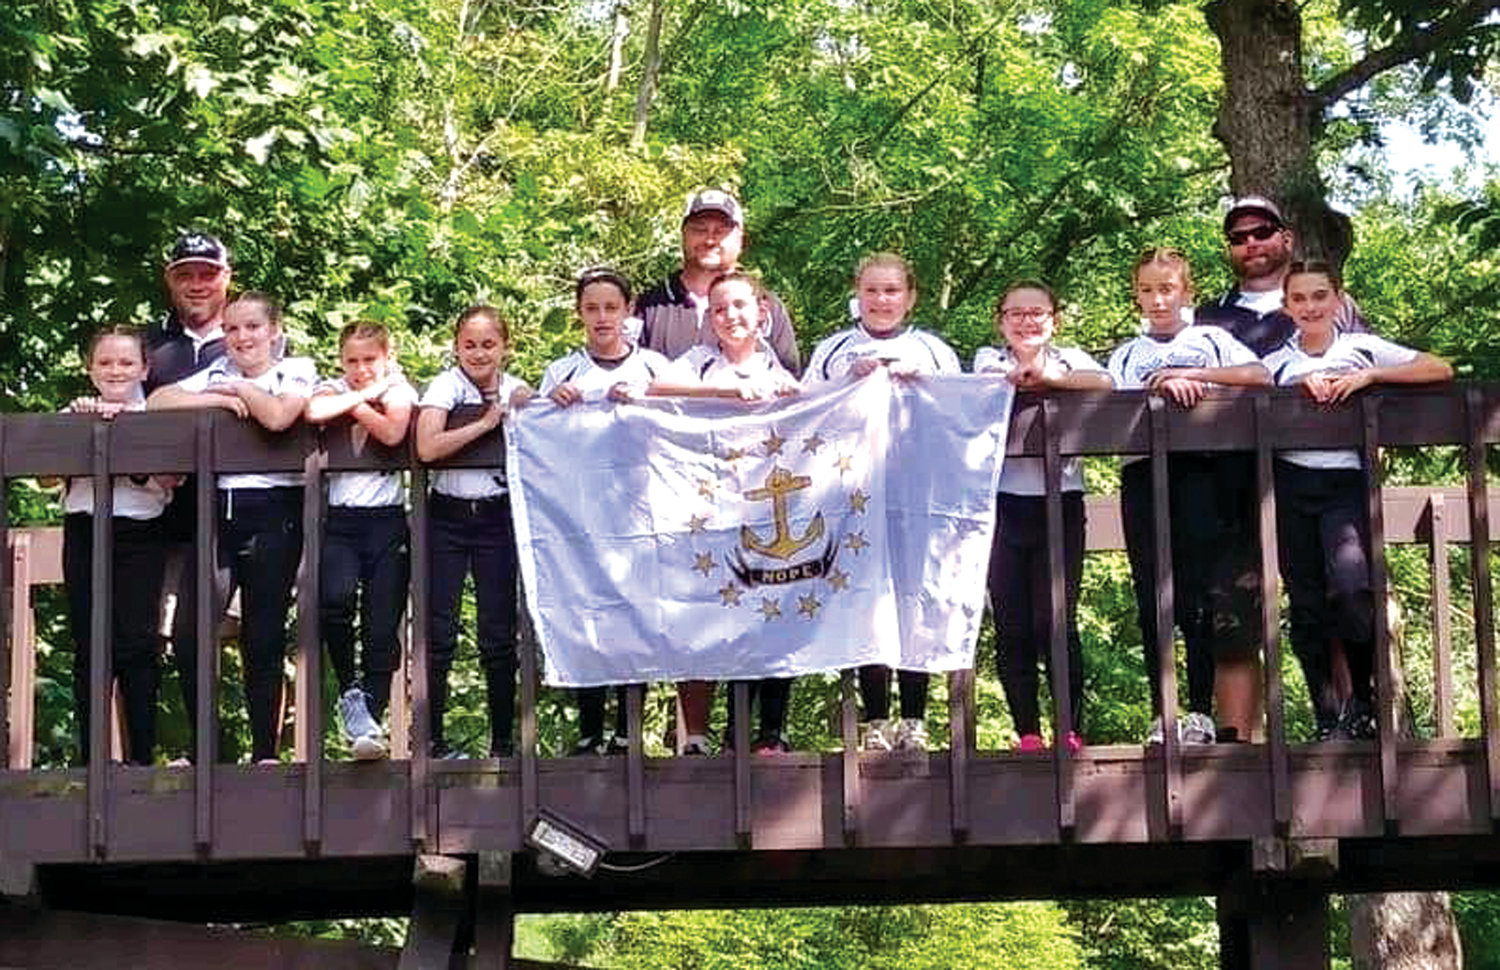 ROAD TRIP: The Warwick North 10 year old softball team during its trip to the Eastern Regionals in Pennsylvania.